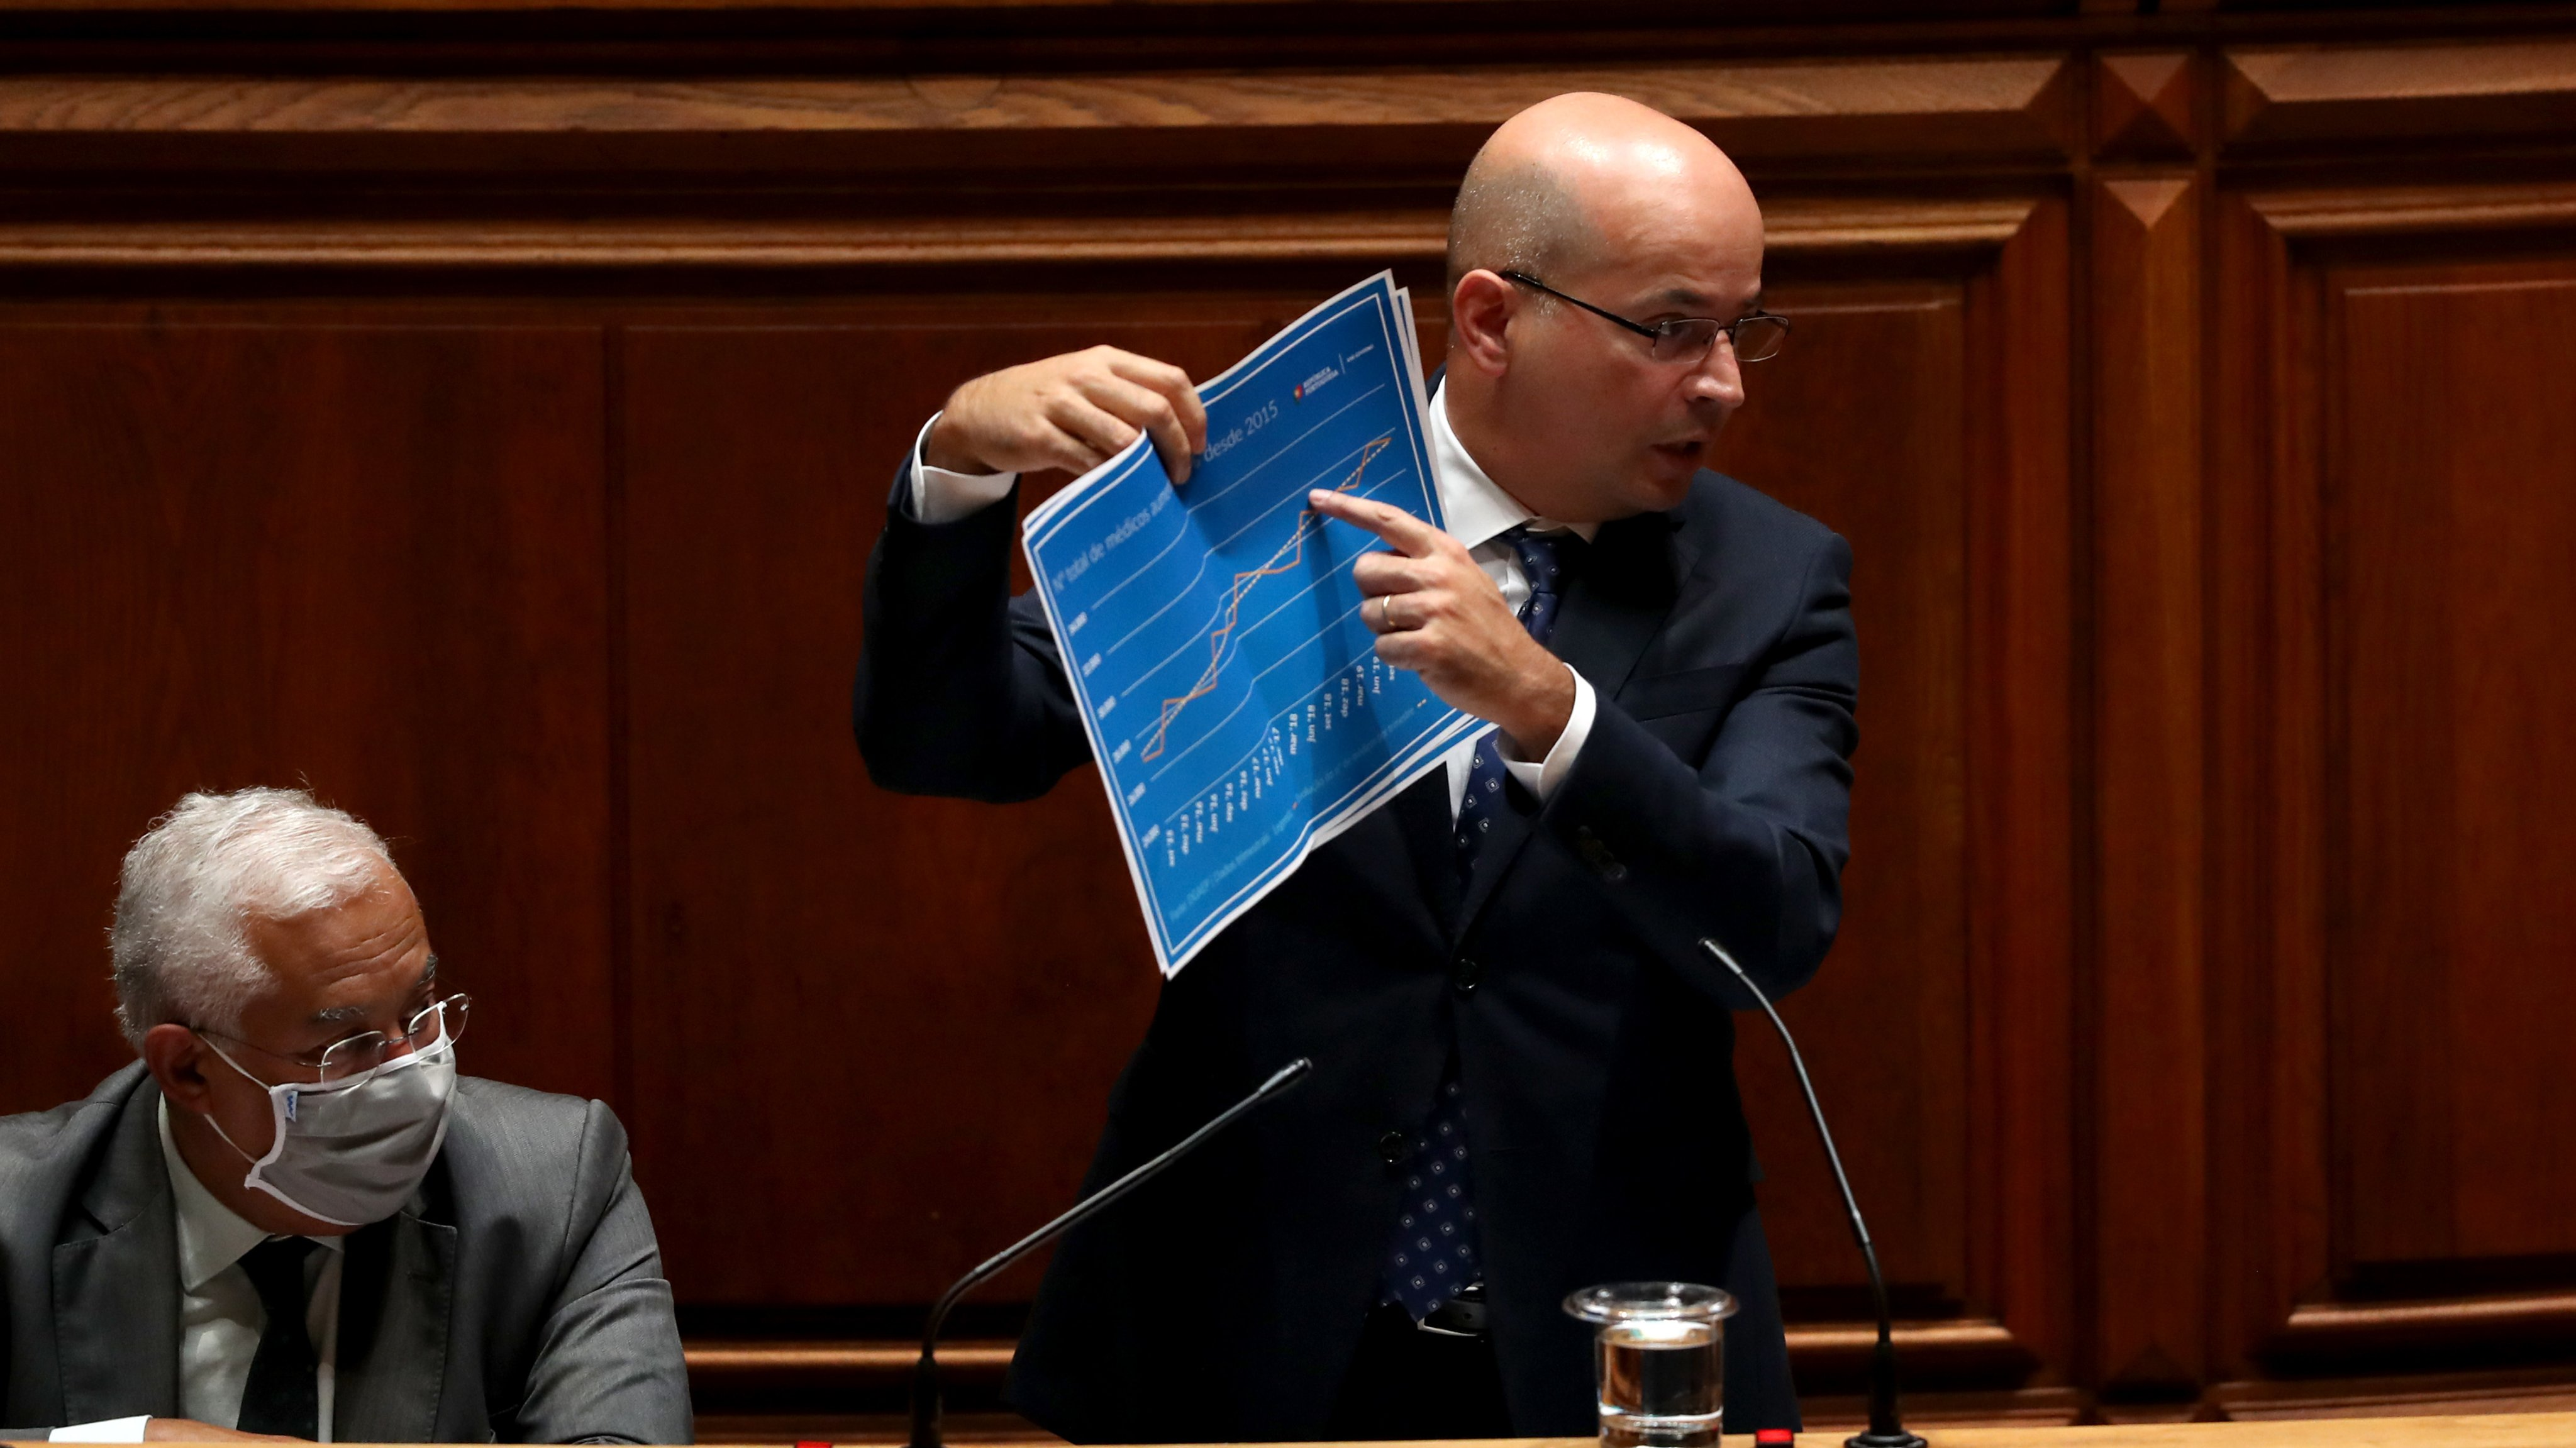 Portuguese Parliament discuss the State Budget for 2021